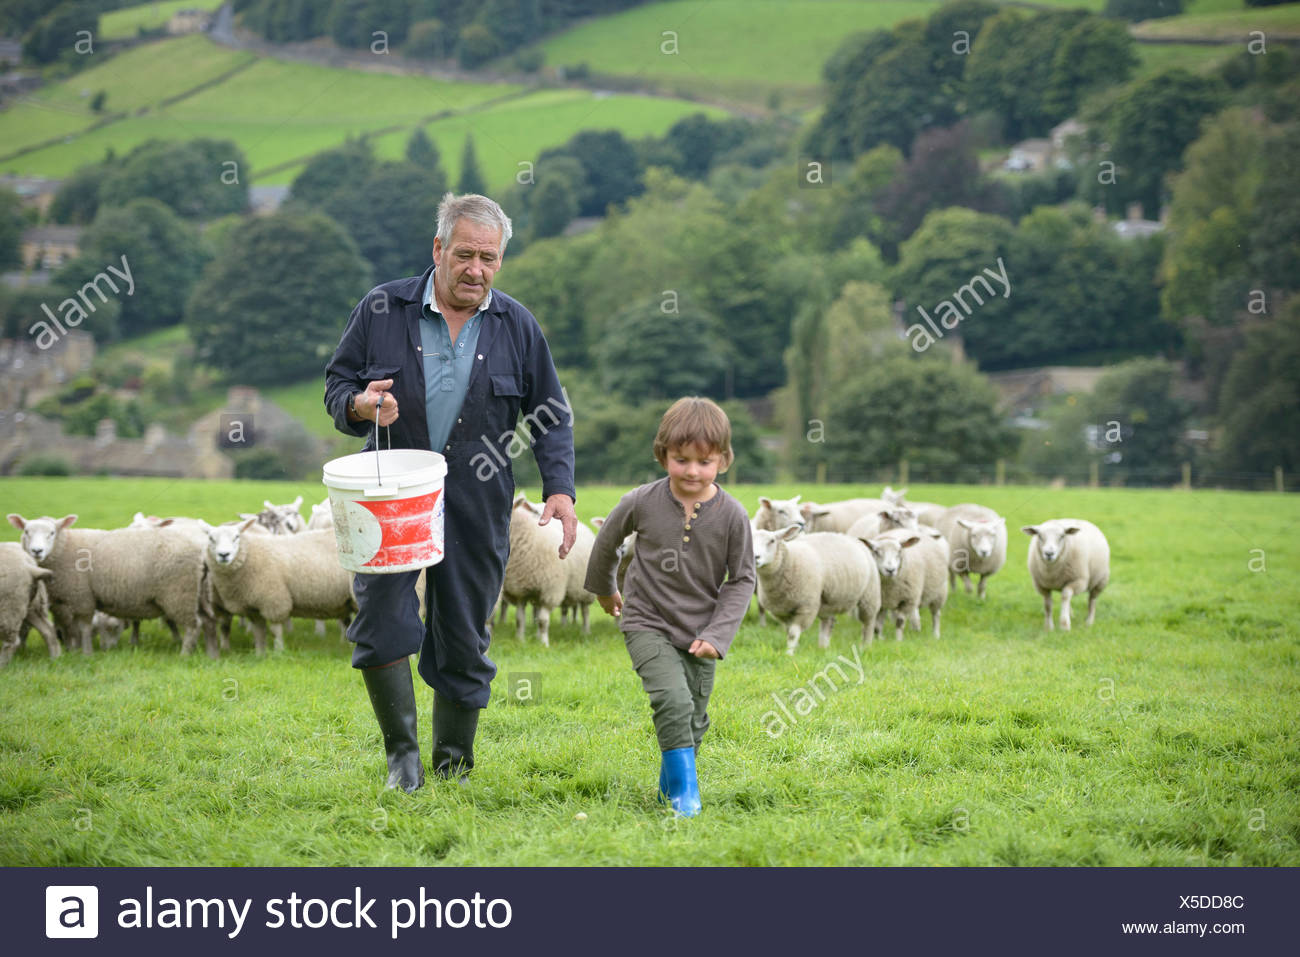 Young farmer feeding sheep in field Photo Stock